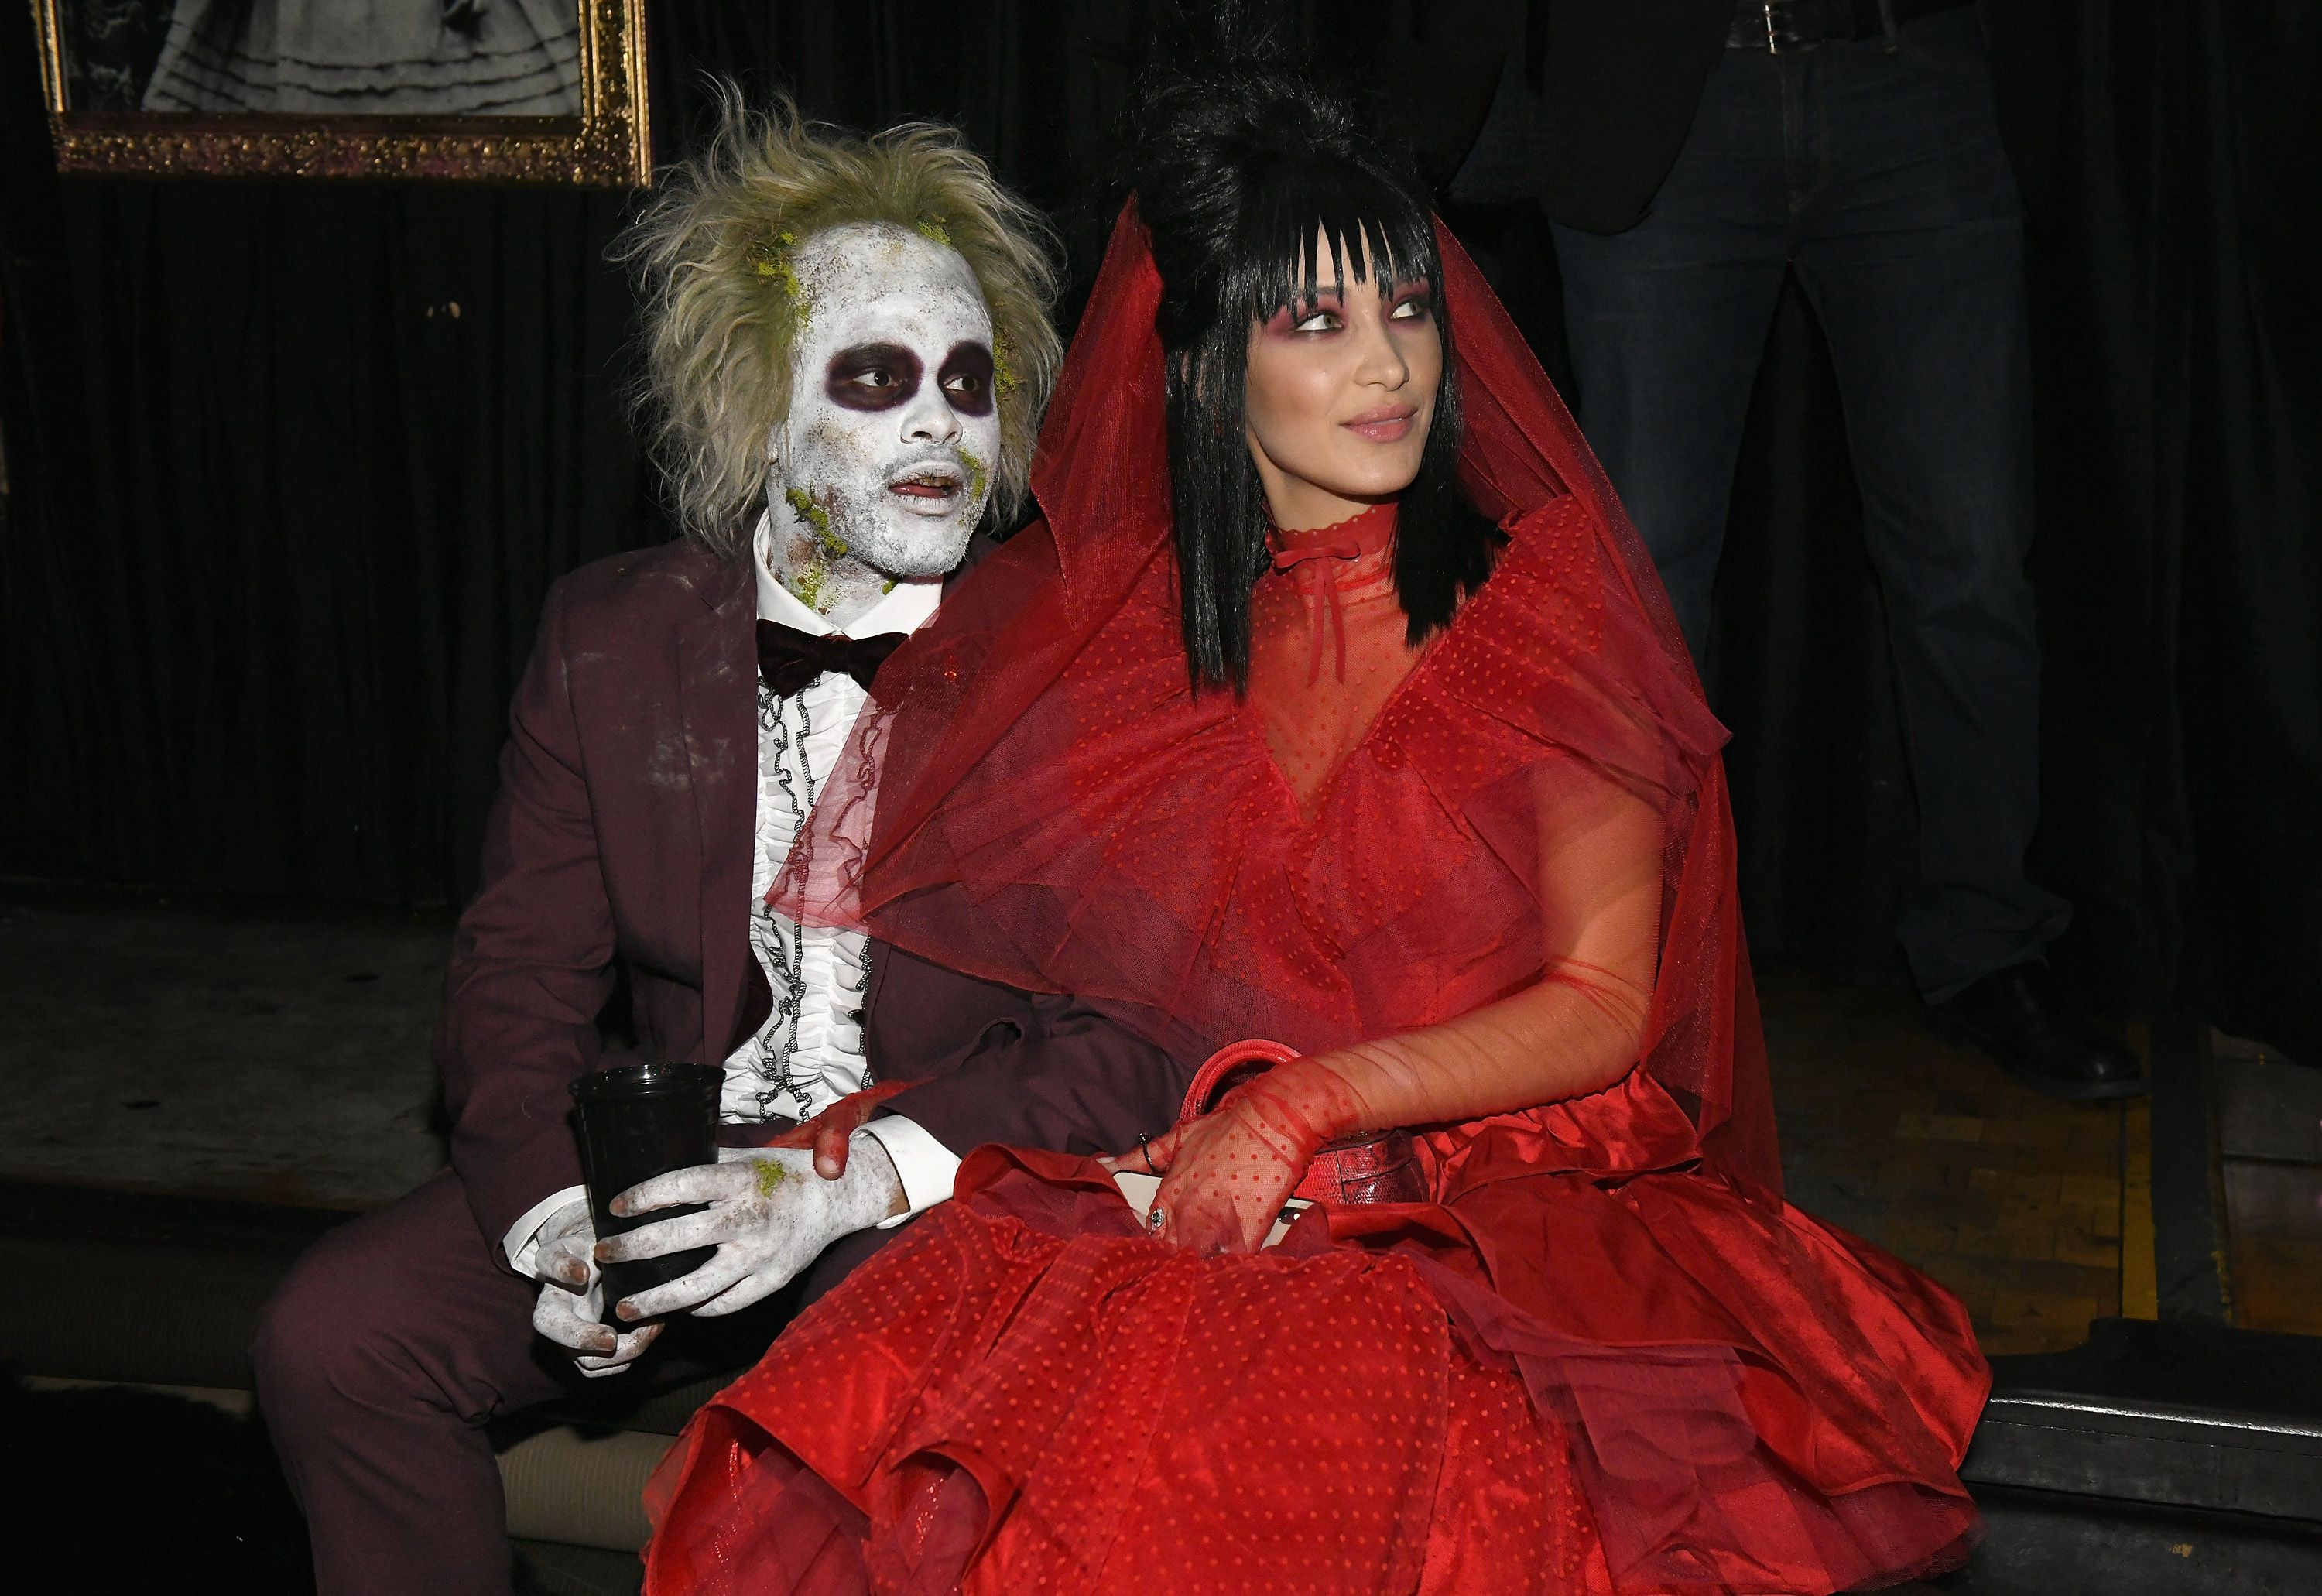 Celebrity Couple Costumes Ideas 2019 Outrageous Celebrity Couple Halloween Costumes